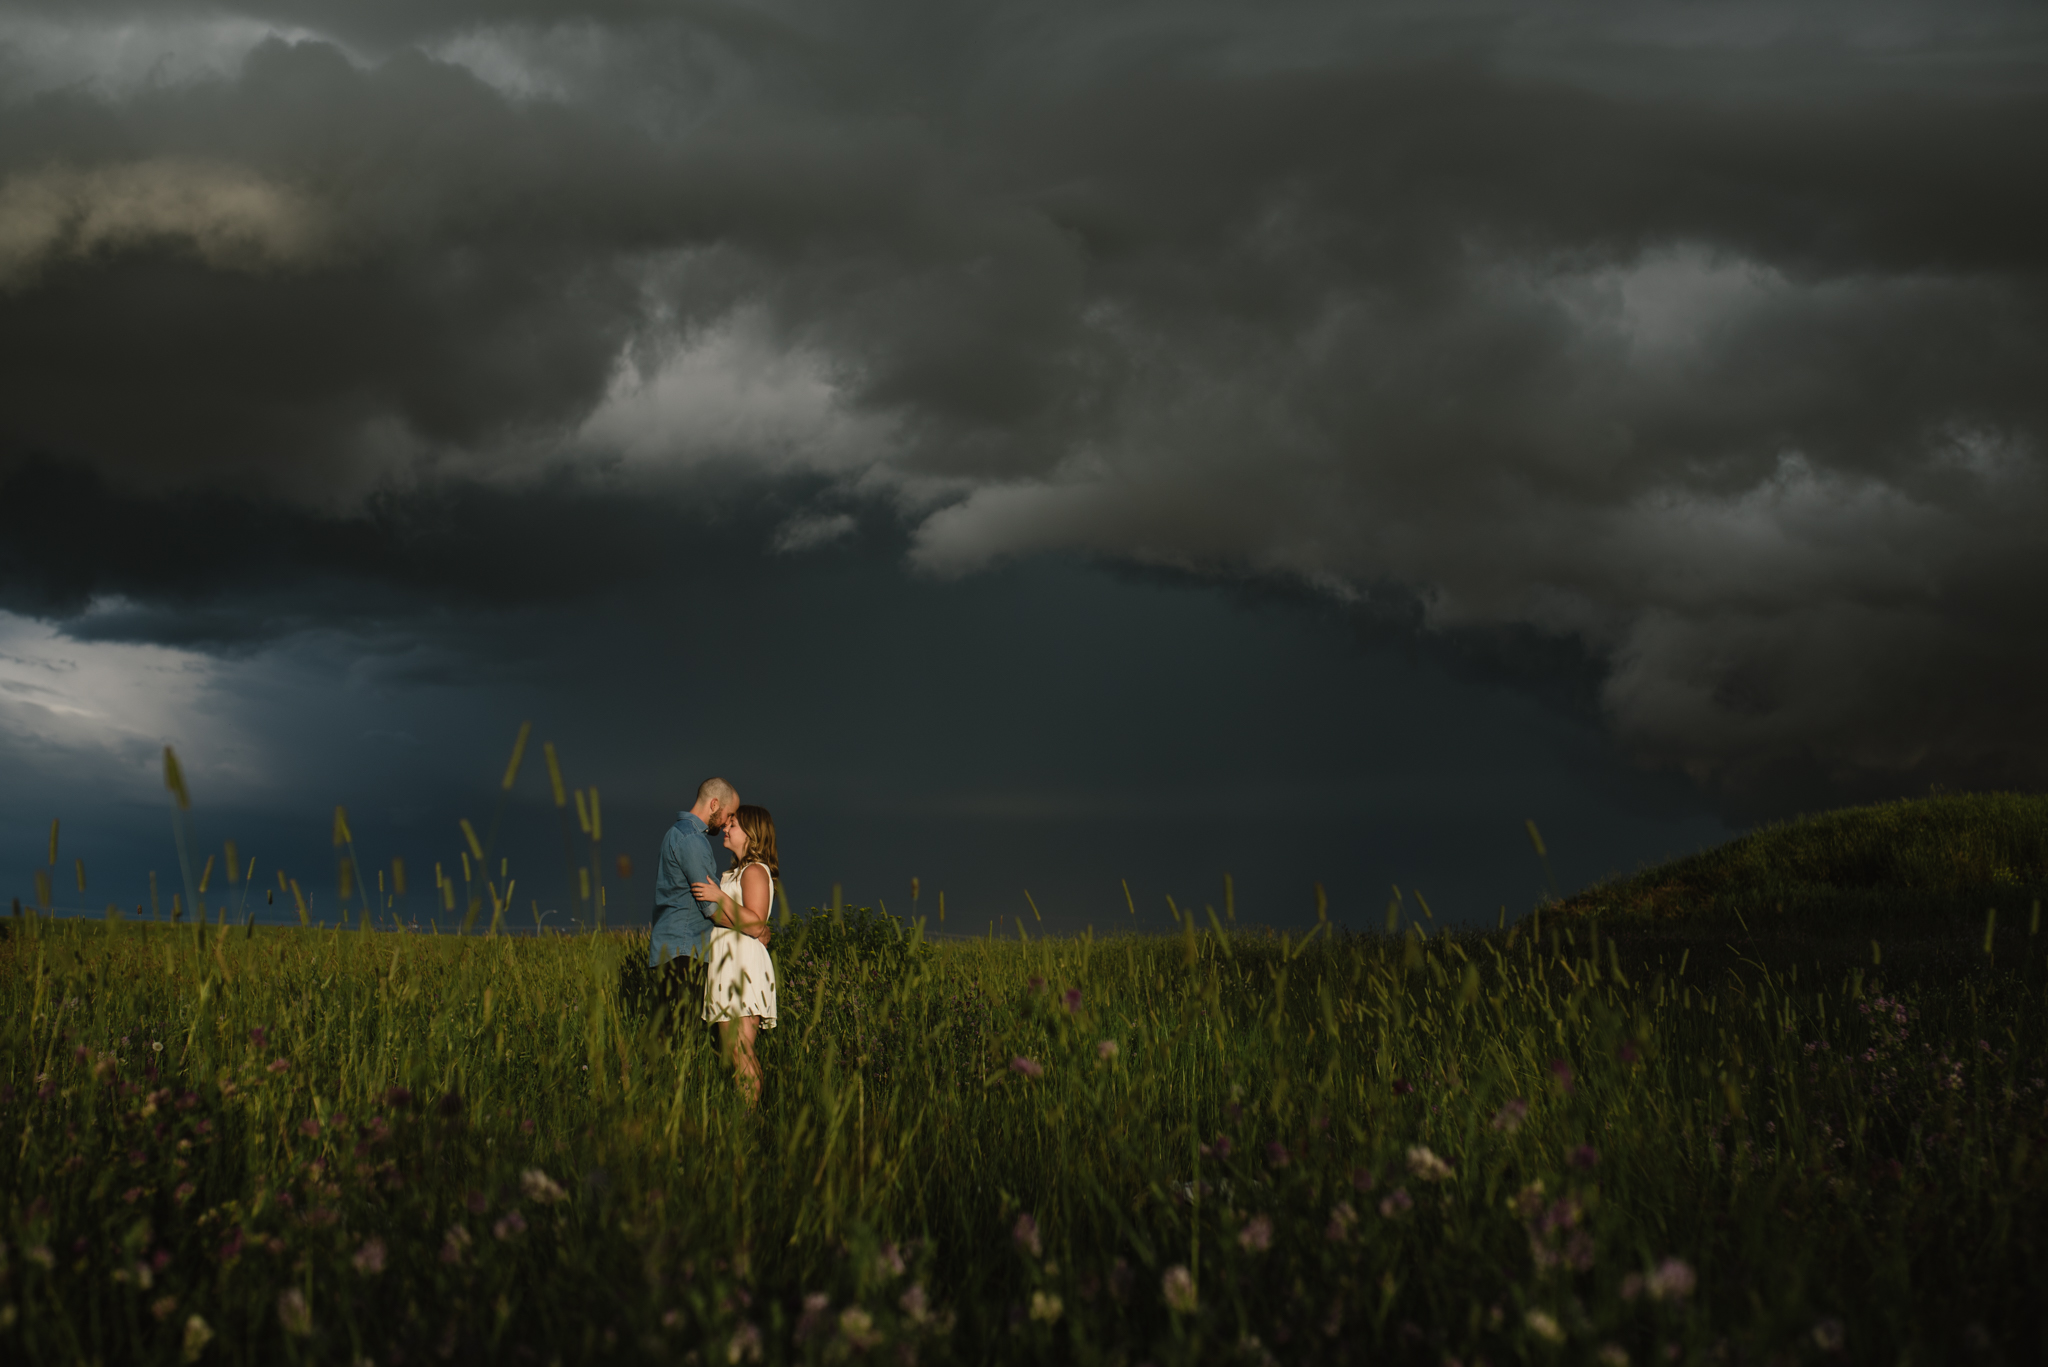 Thunder storm engagement photography, Jessica Leanne Photography